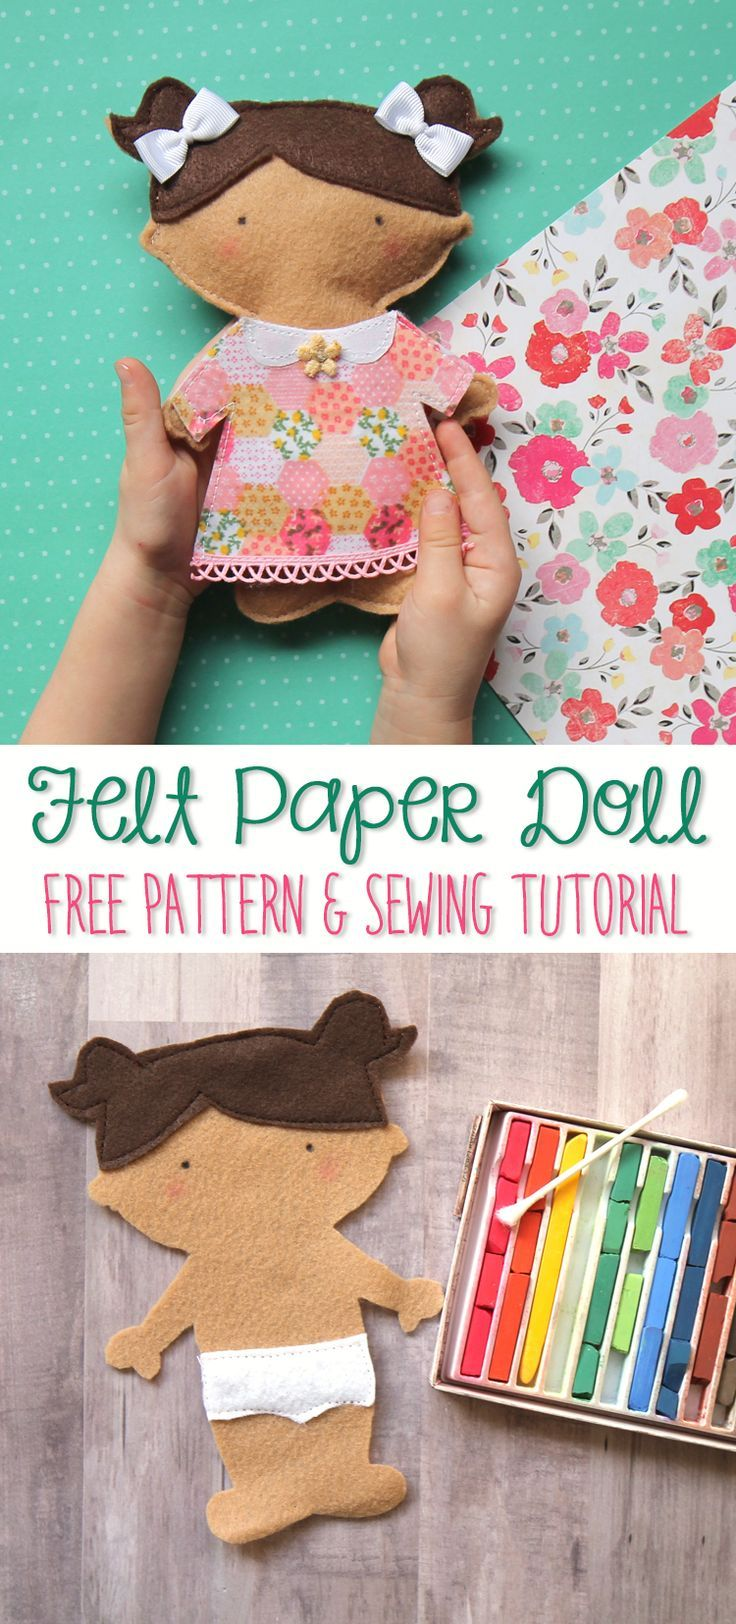 Sewing crafts for teens - This Diy Felt Paper Doll Free Sewing Pattern And Tutorial Is